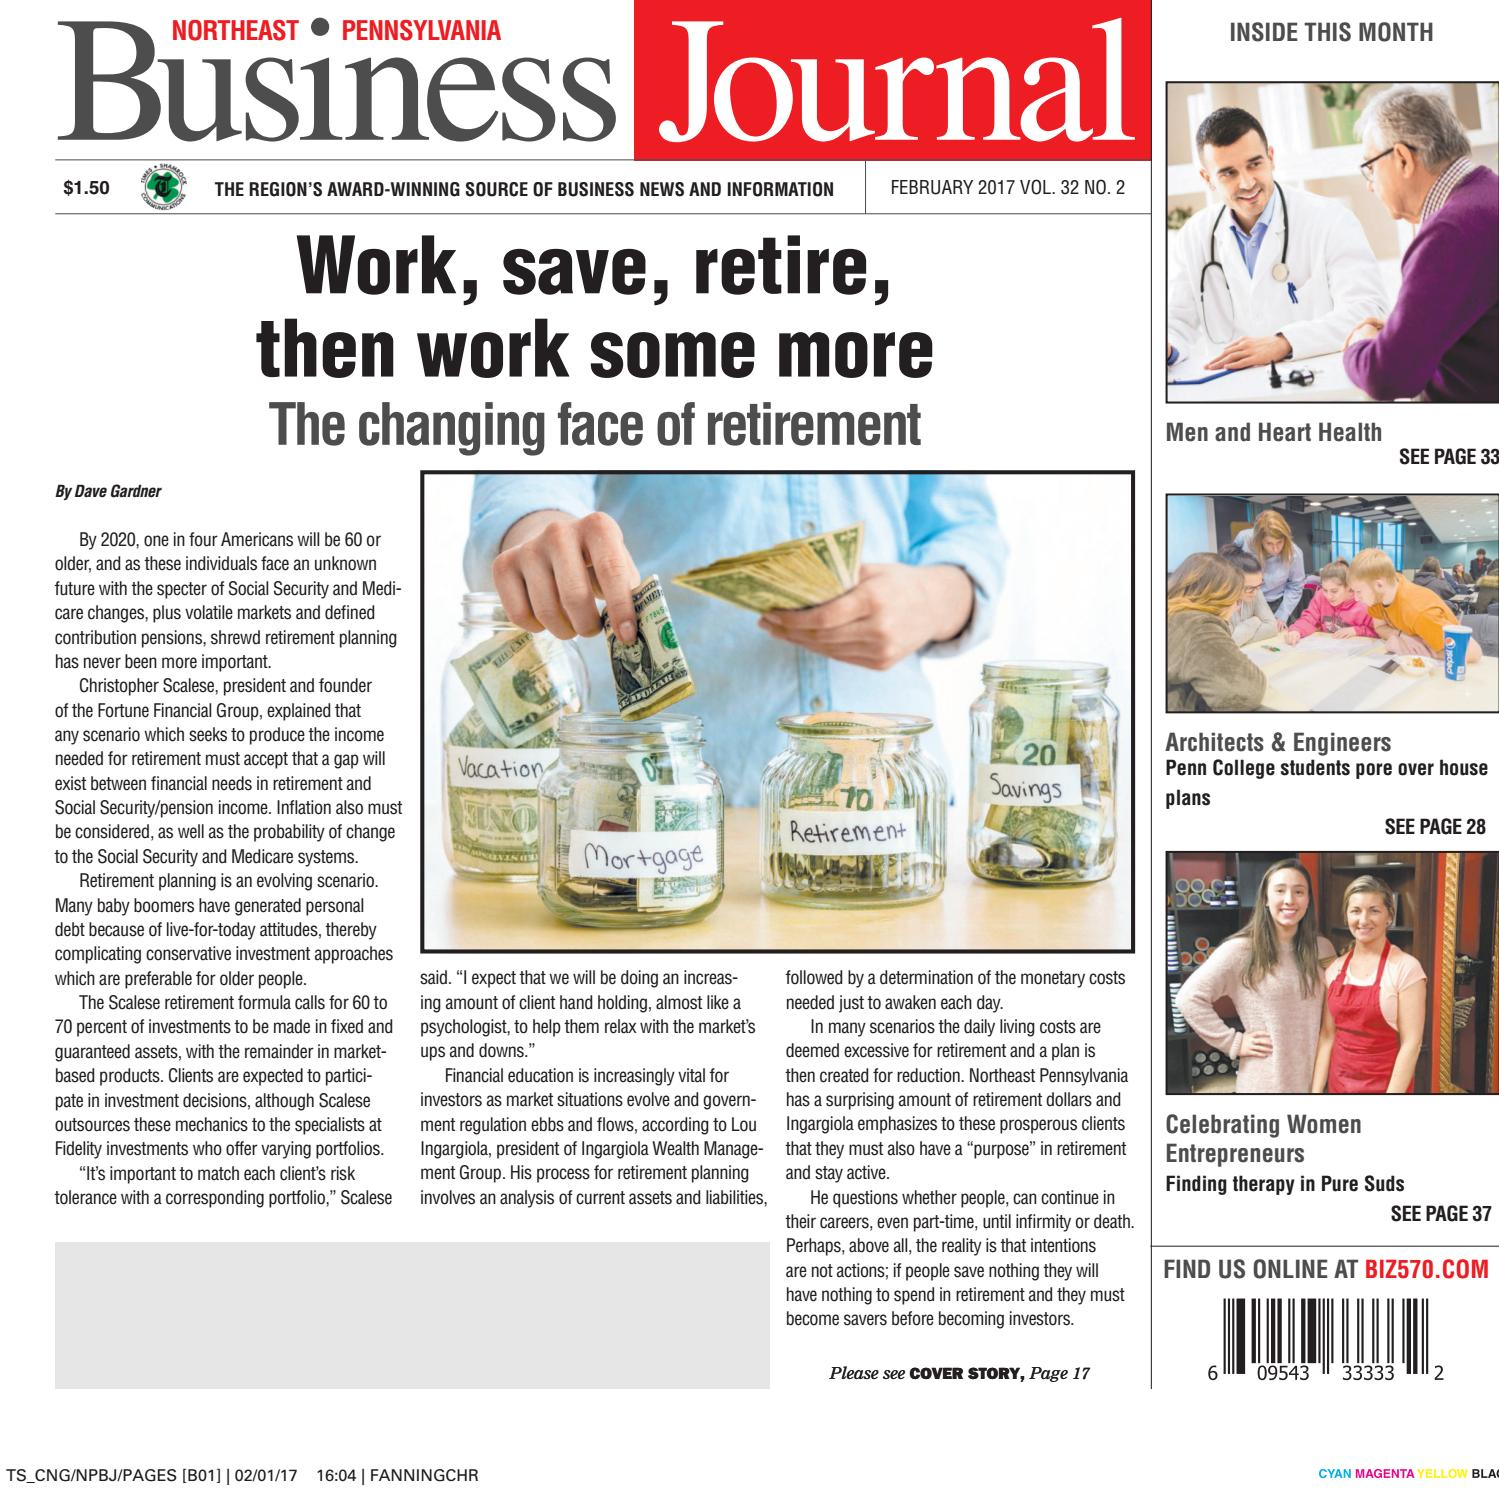 Northeast Pennsylvania Business Journal--02-17 by CNG